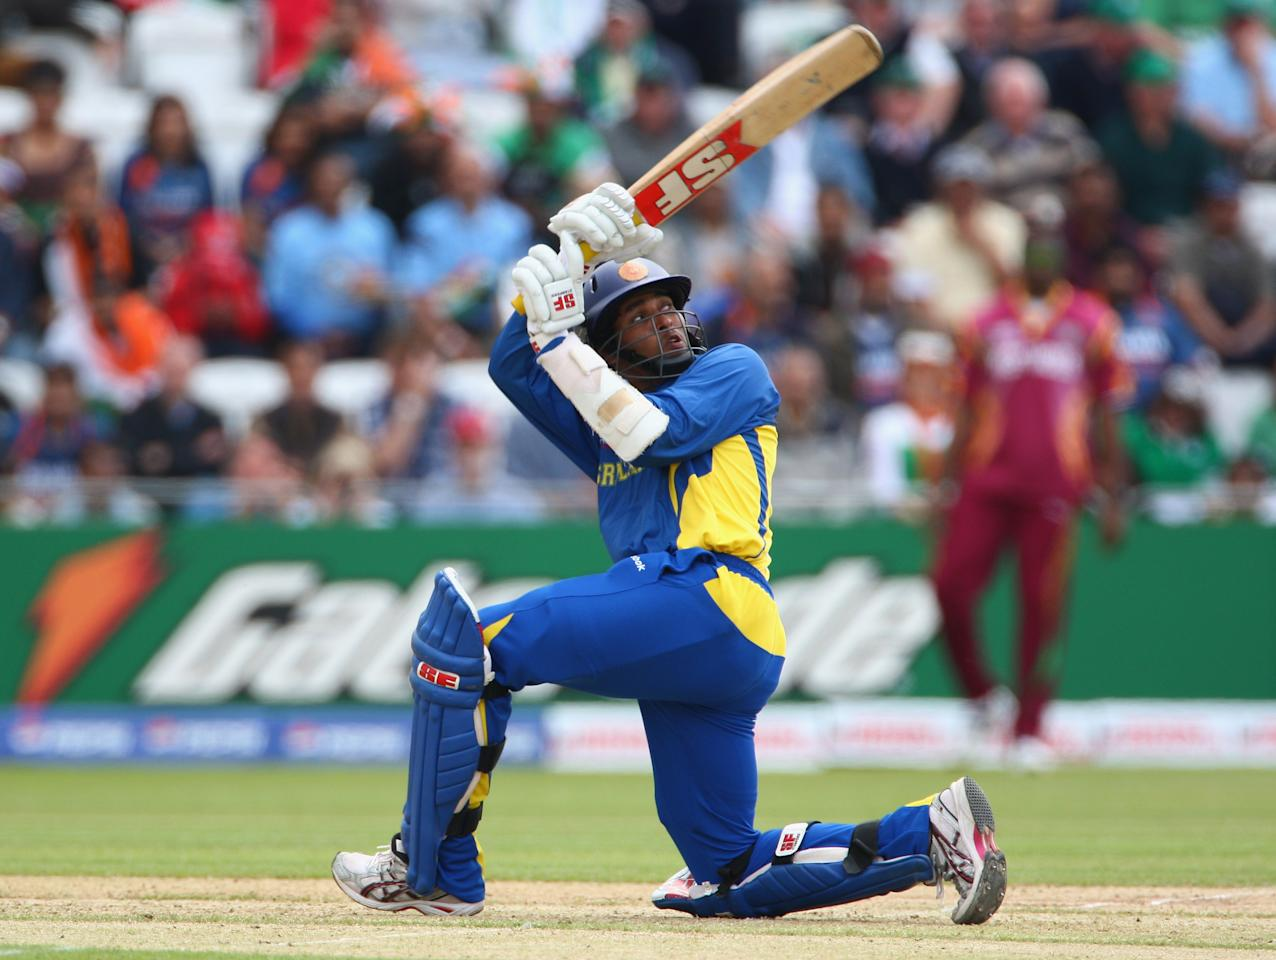 NOTTINGHAM, ENGLAND - JUNE 10:  Tillakaratne Dilshan of Sri Lanka gets some runs during the ICC World Twenty20 match between West Indies and Sri Lanka at Trent Bridge on June 10, 2009 in Nottingham, England.  (Photo by Clive Mason/Getty Images)